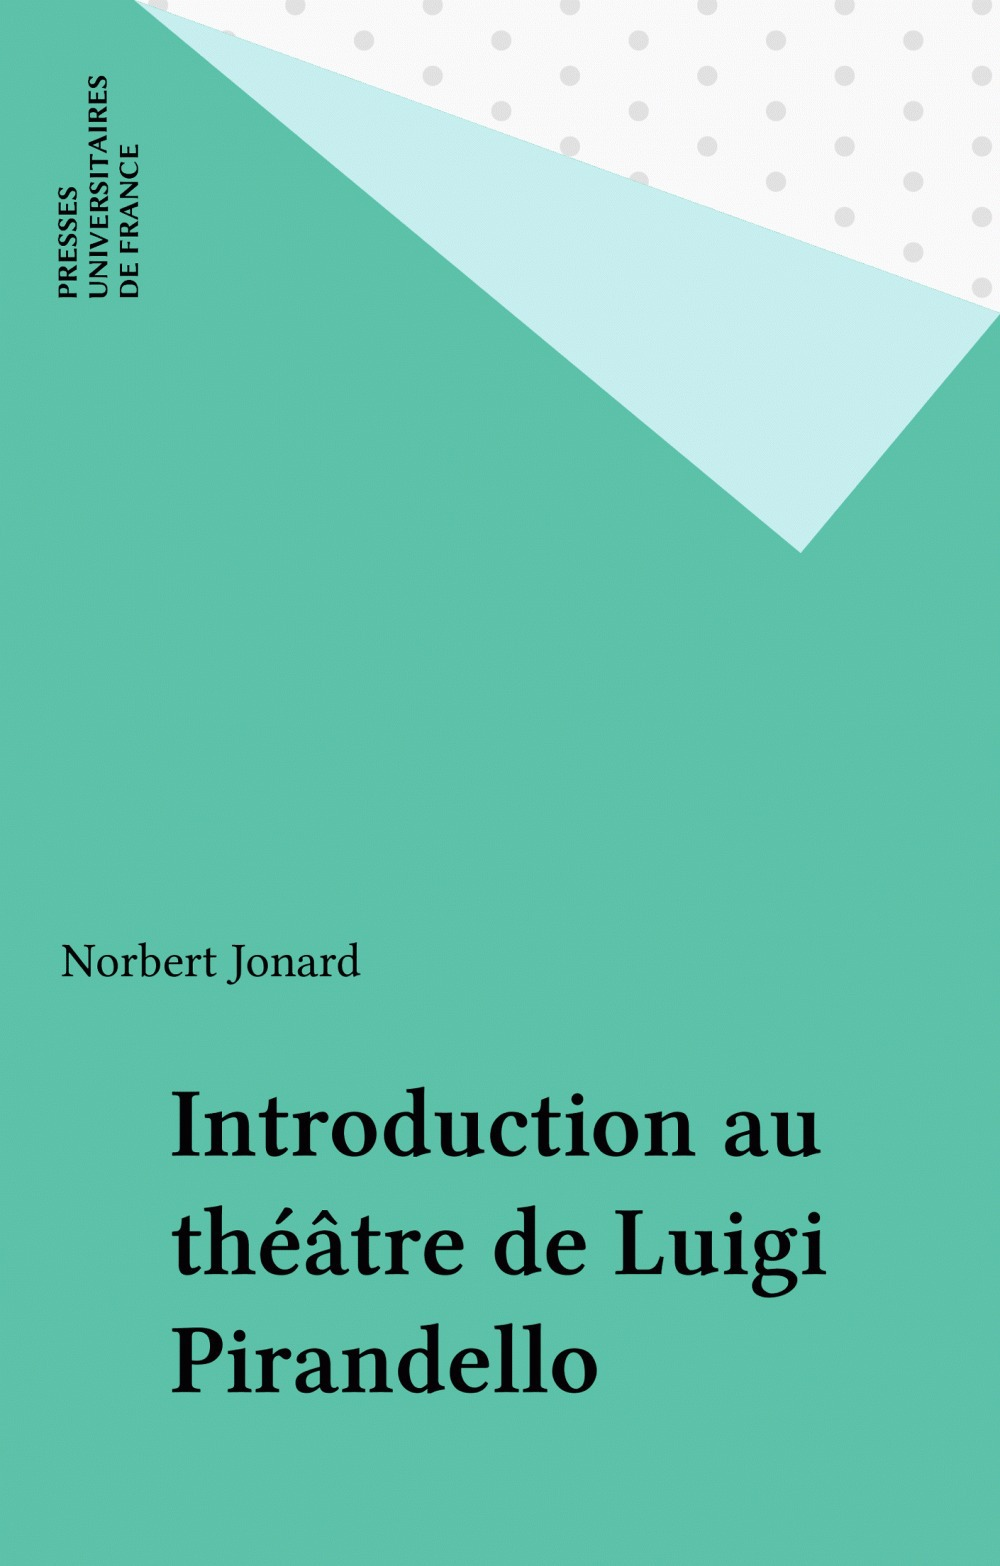 Introduction au théâtre de Luigi Pirandello